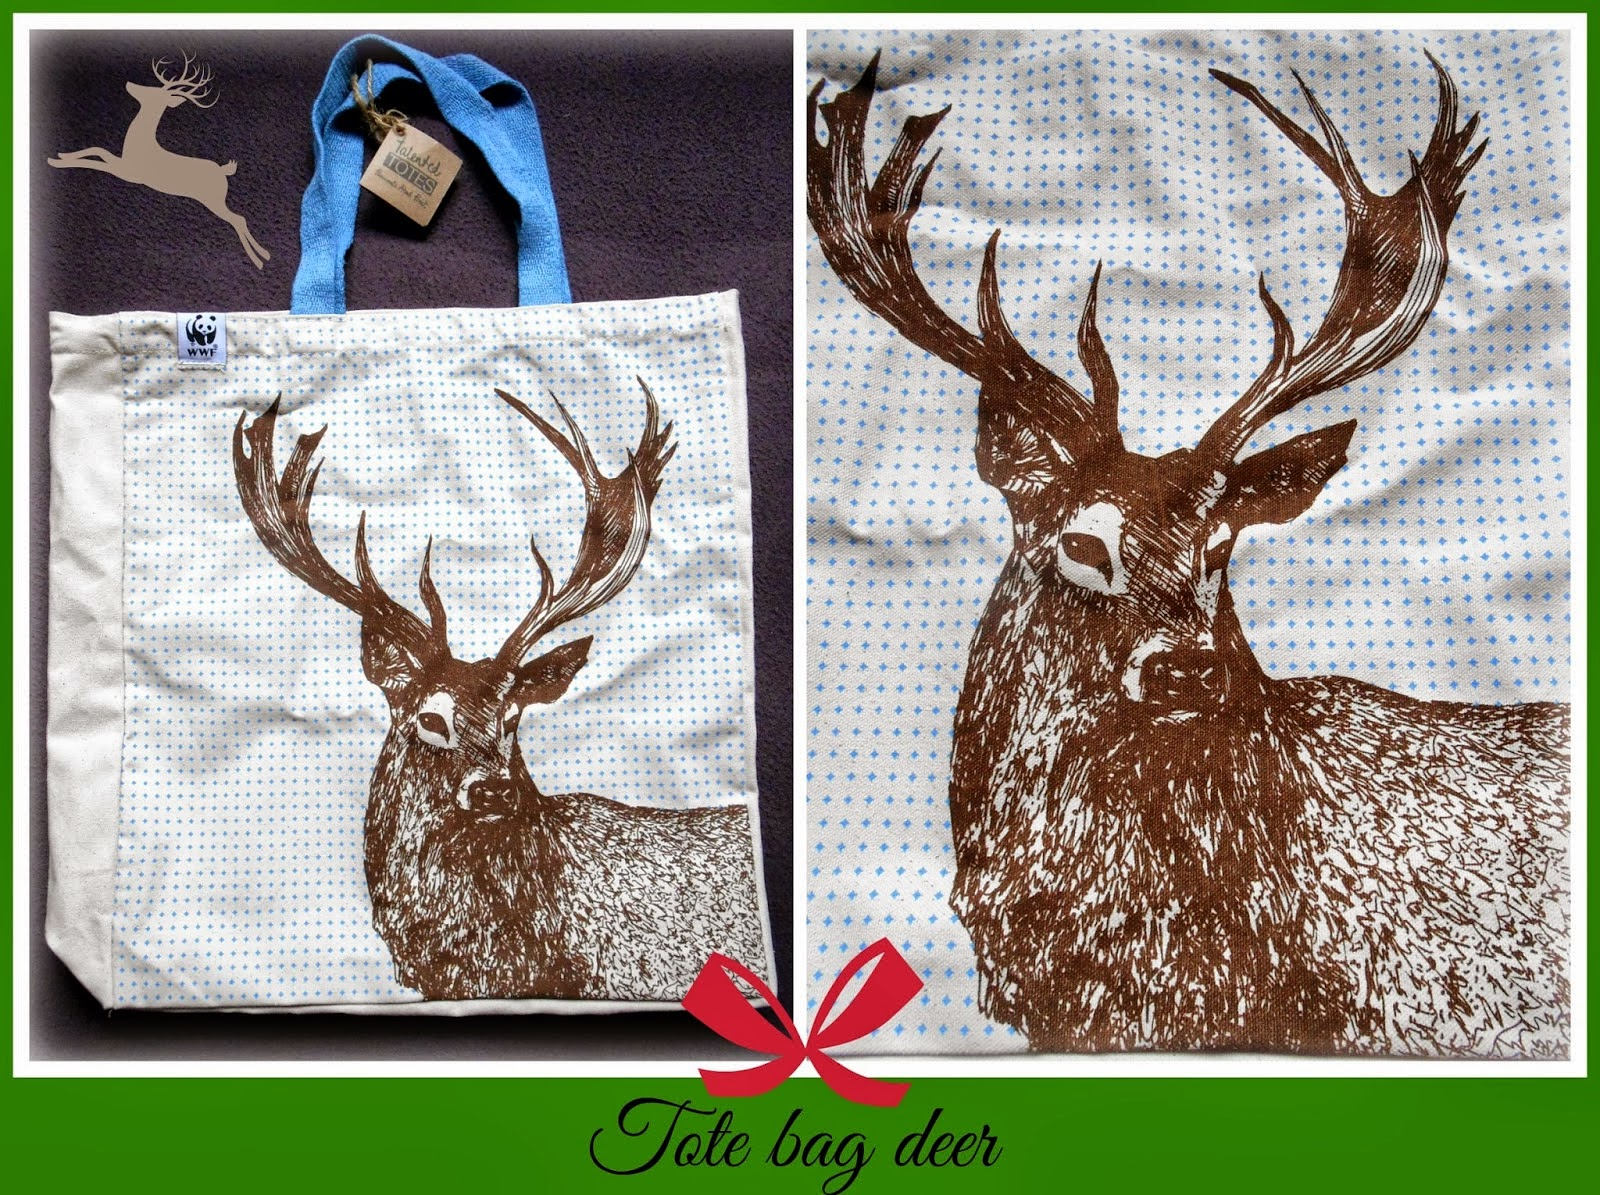 Stag Deer Tote Bag from WWF